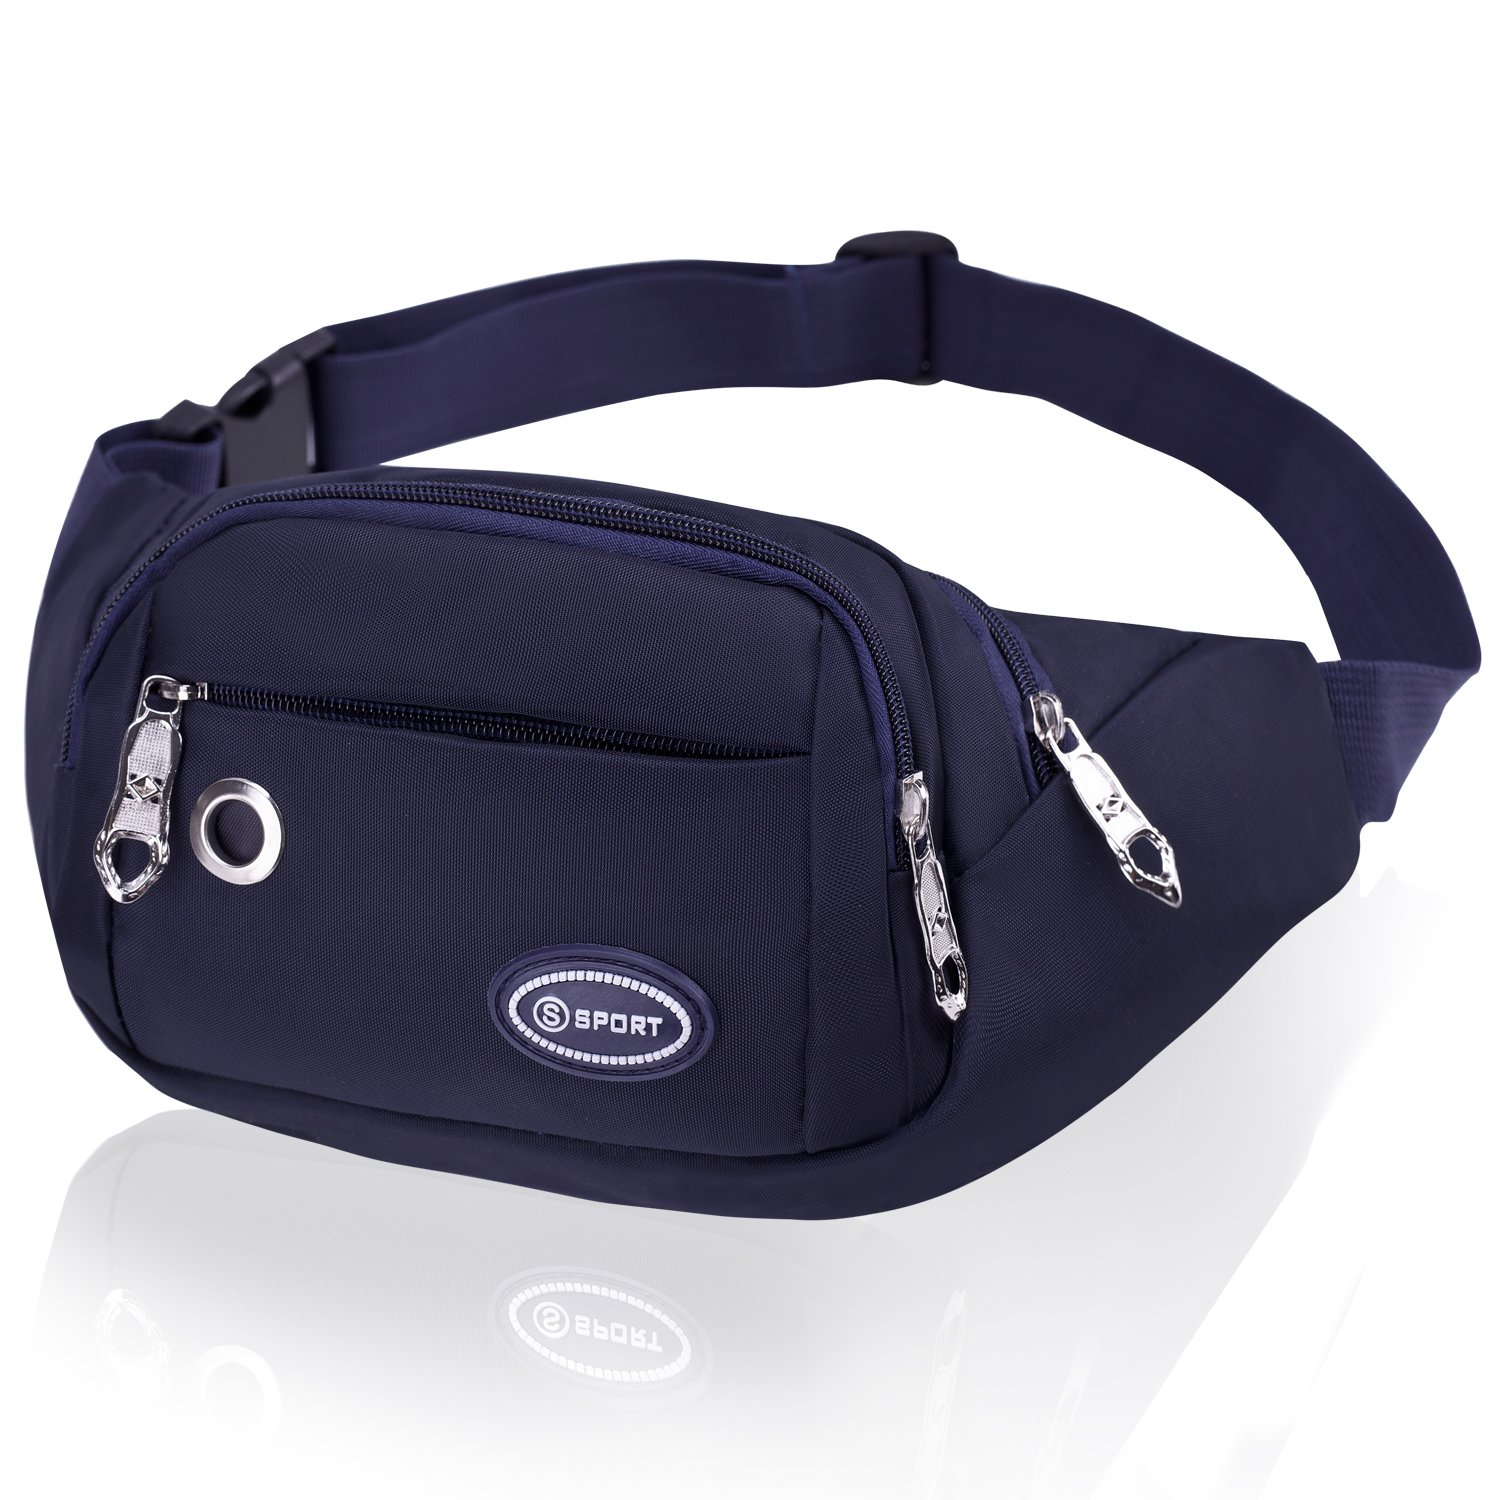 Blue Bum Bag Fanny Pack for Women and Men CAMORF Large Capacity Waist Bag 4 Pockets - Waterproof Running Belt Fits MAX 7.9'' iPad & 6.6'' Cellphone iPhone - Travel Bum Bag for Running Hiking Cycling Workout